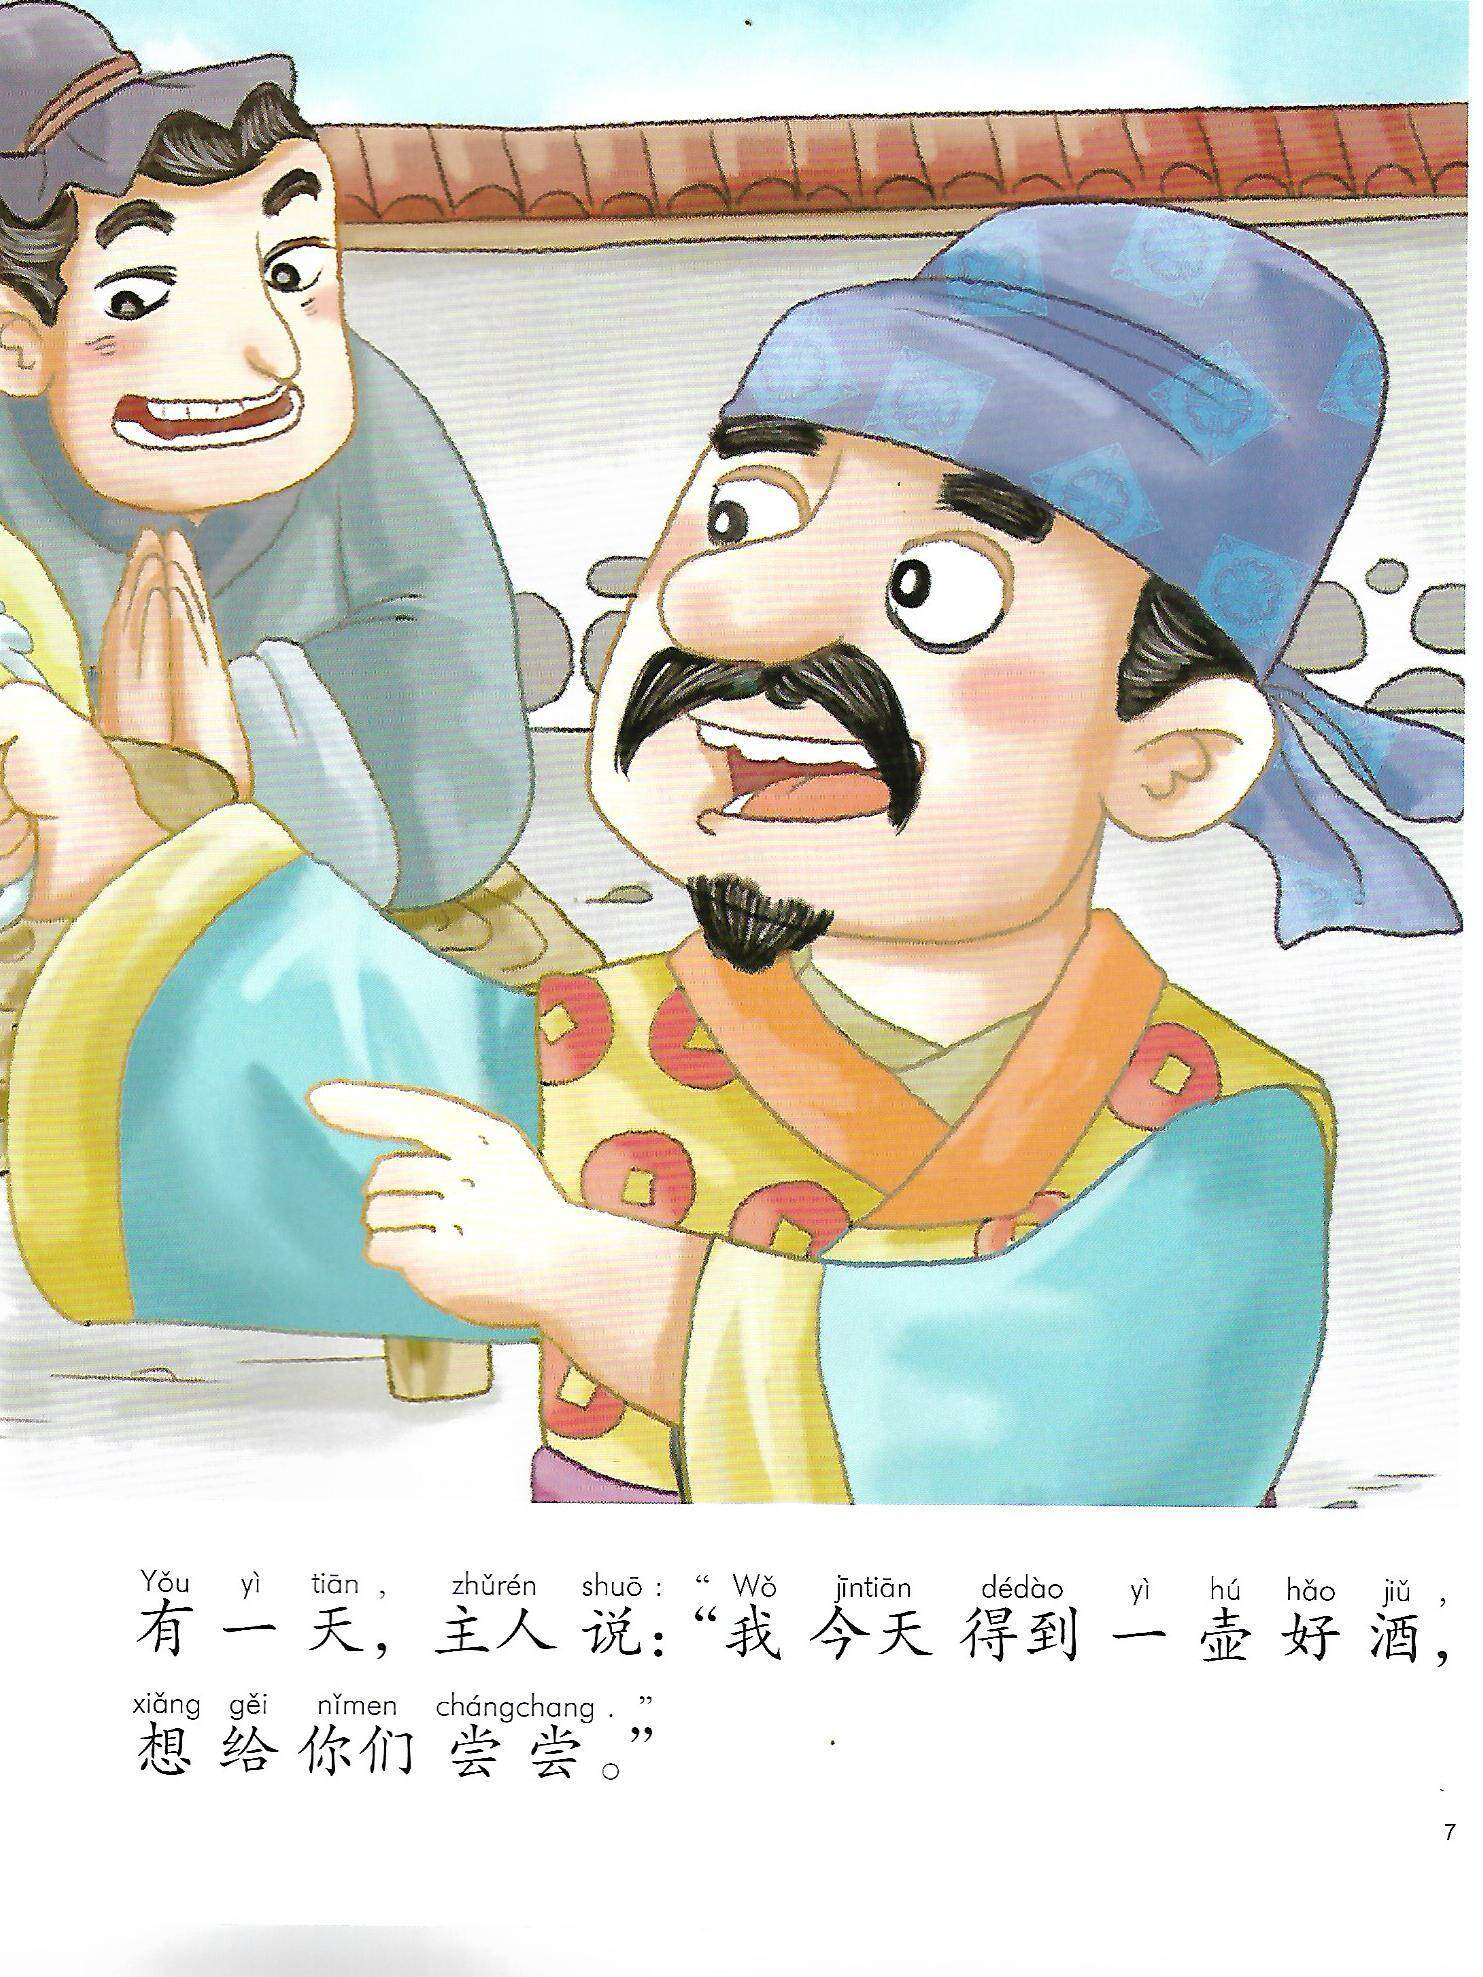 Mandarin Book for Kid: My First Chinese Storybooks: Drawing a Snake 我的第一本中文故事书 : 画蛇添足